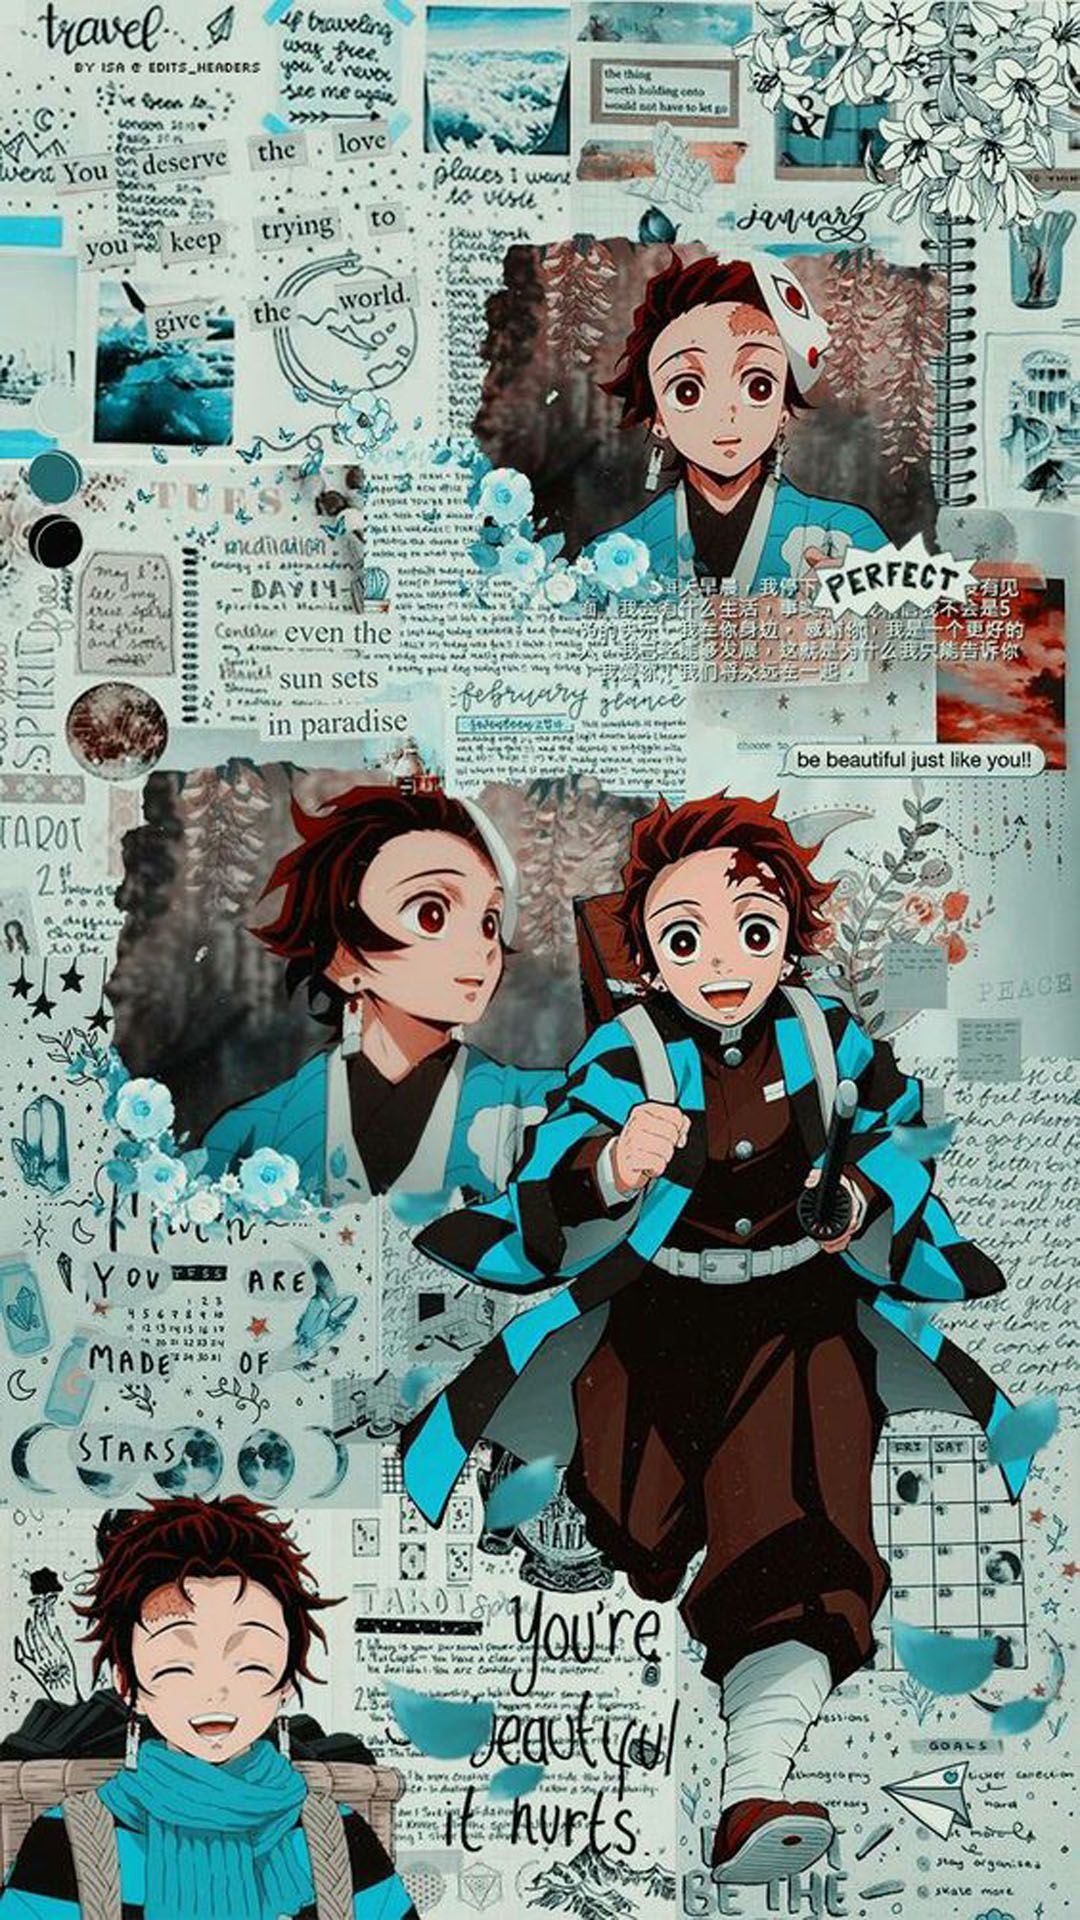 Most Latest Aesthetic Anime Wallpaper Iphone Tanjiro Kamado Wallpeper For Mobile And Smartphone Of Kimetsu No Yaiba Get A Free Mobile App For This Wallpaper In Em 2020 Animes Wallpapers Personagens